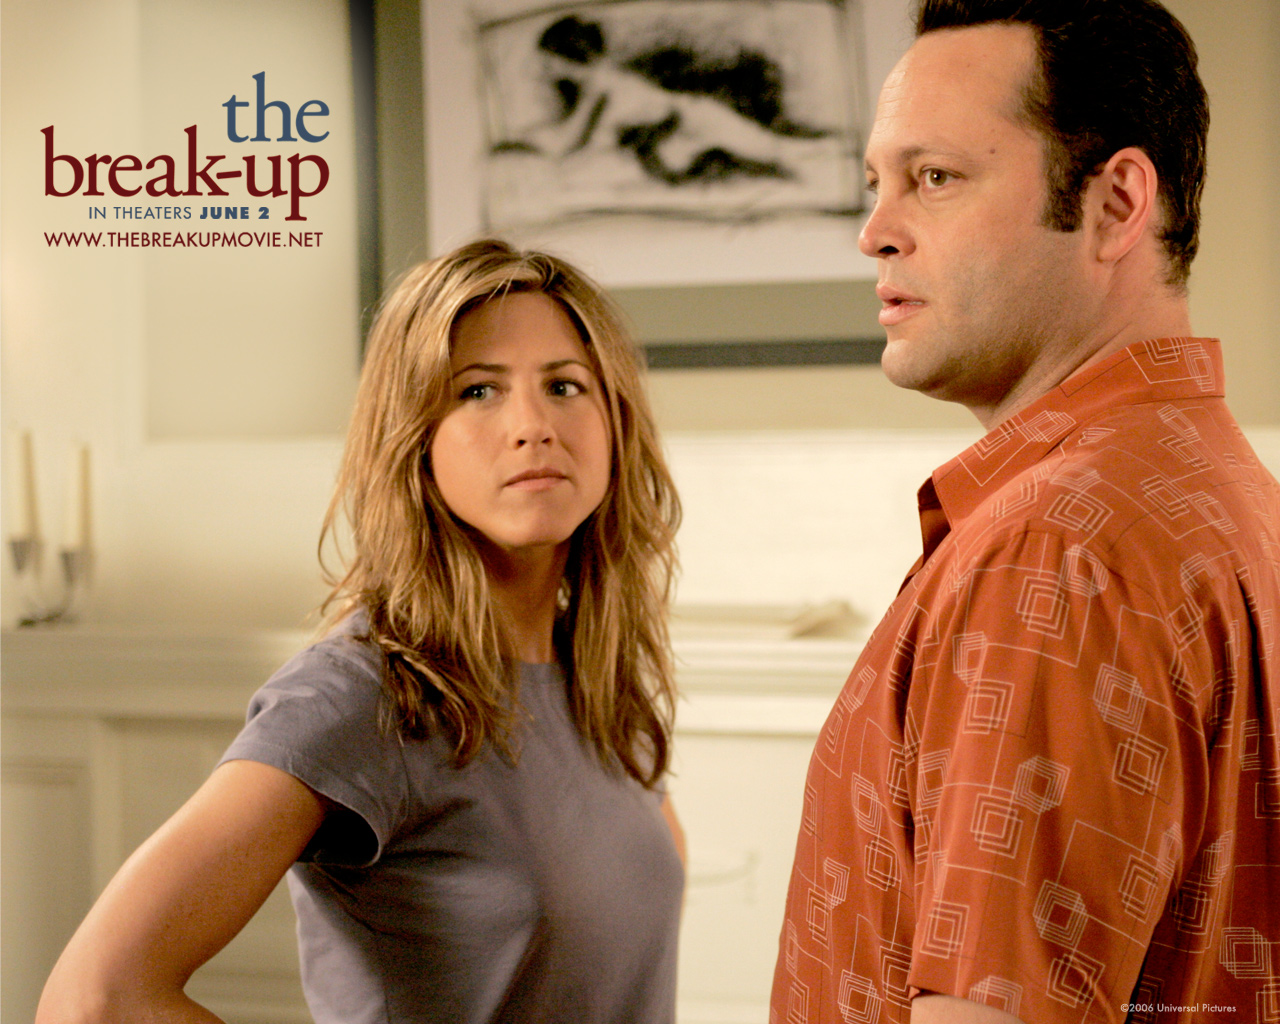 an analysis of the movie the break up The break-up analysis while all relationships can be difficult the break-up is a movie that shows how important interpersonal communication is in relationships.